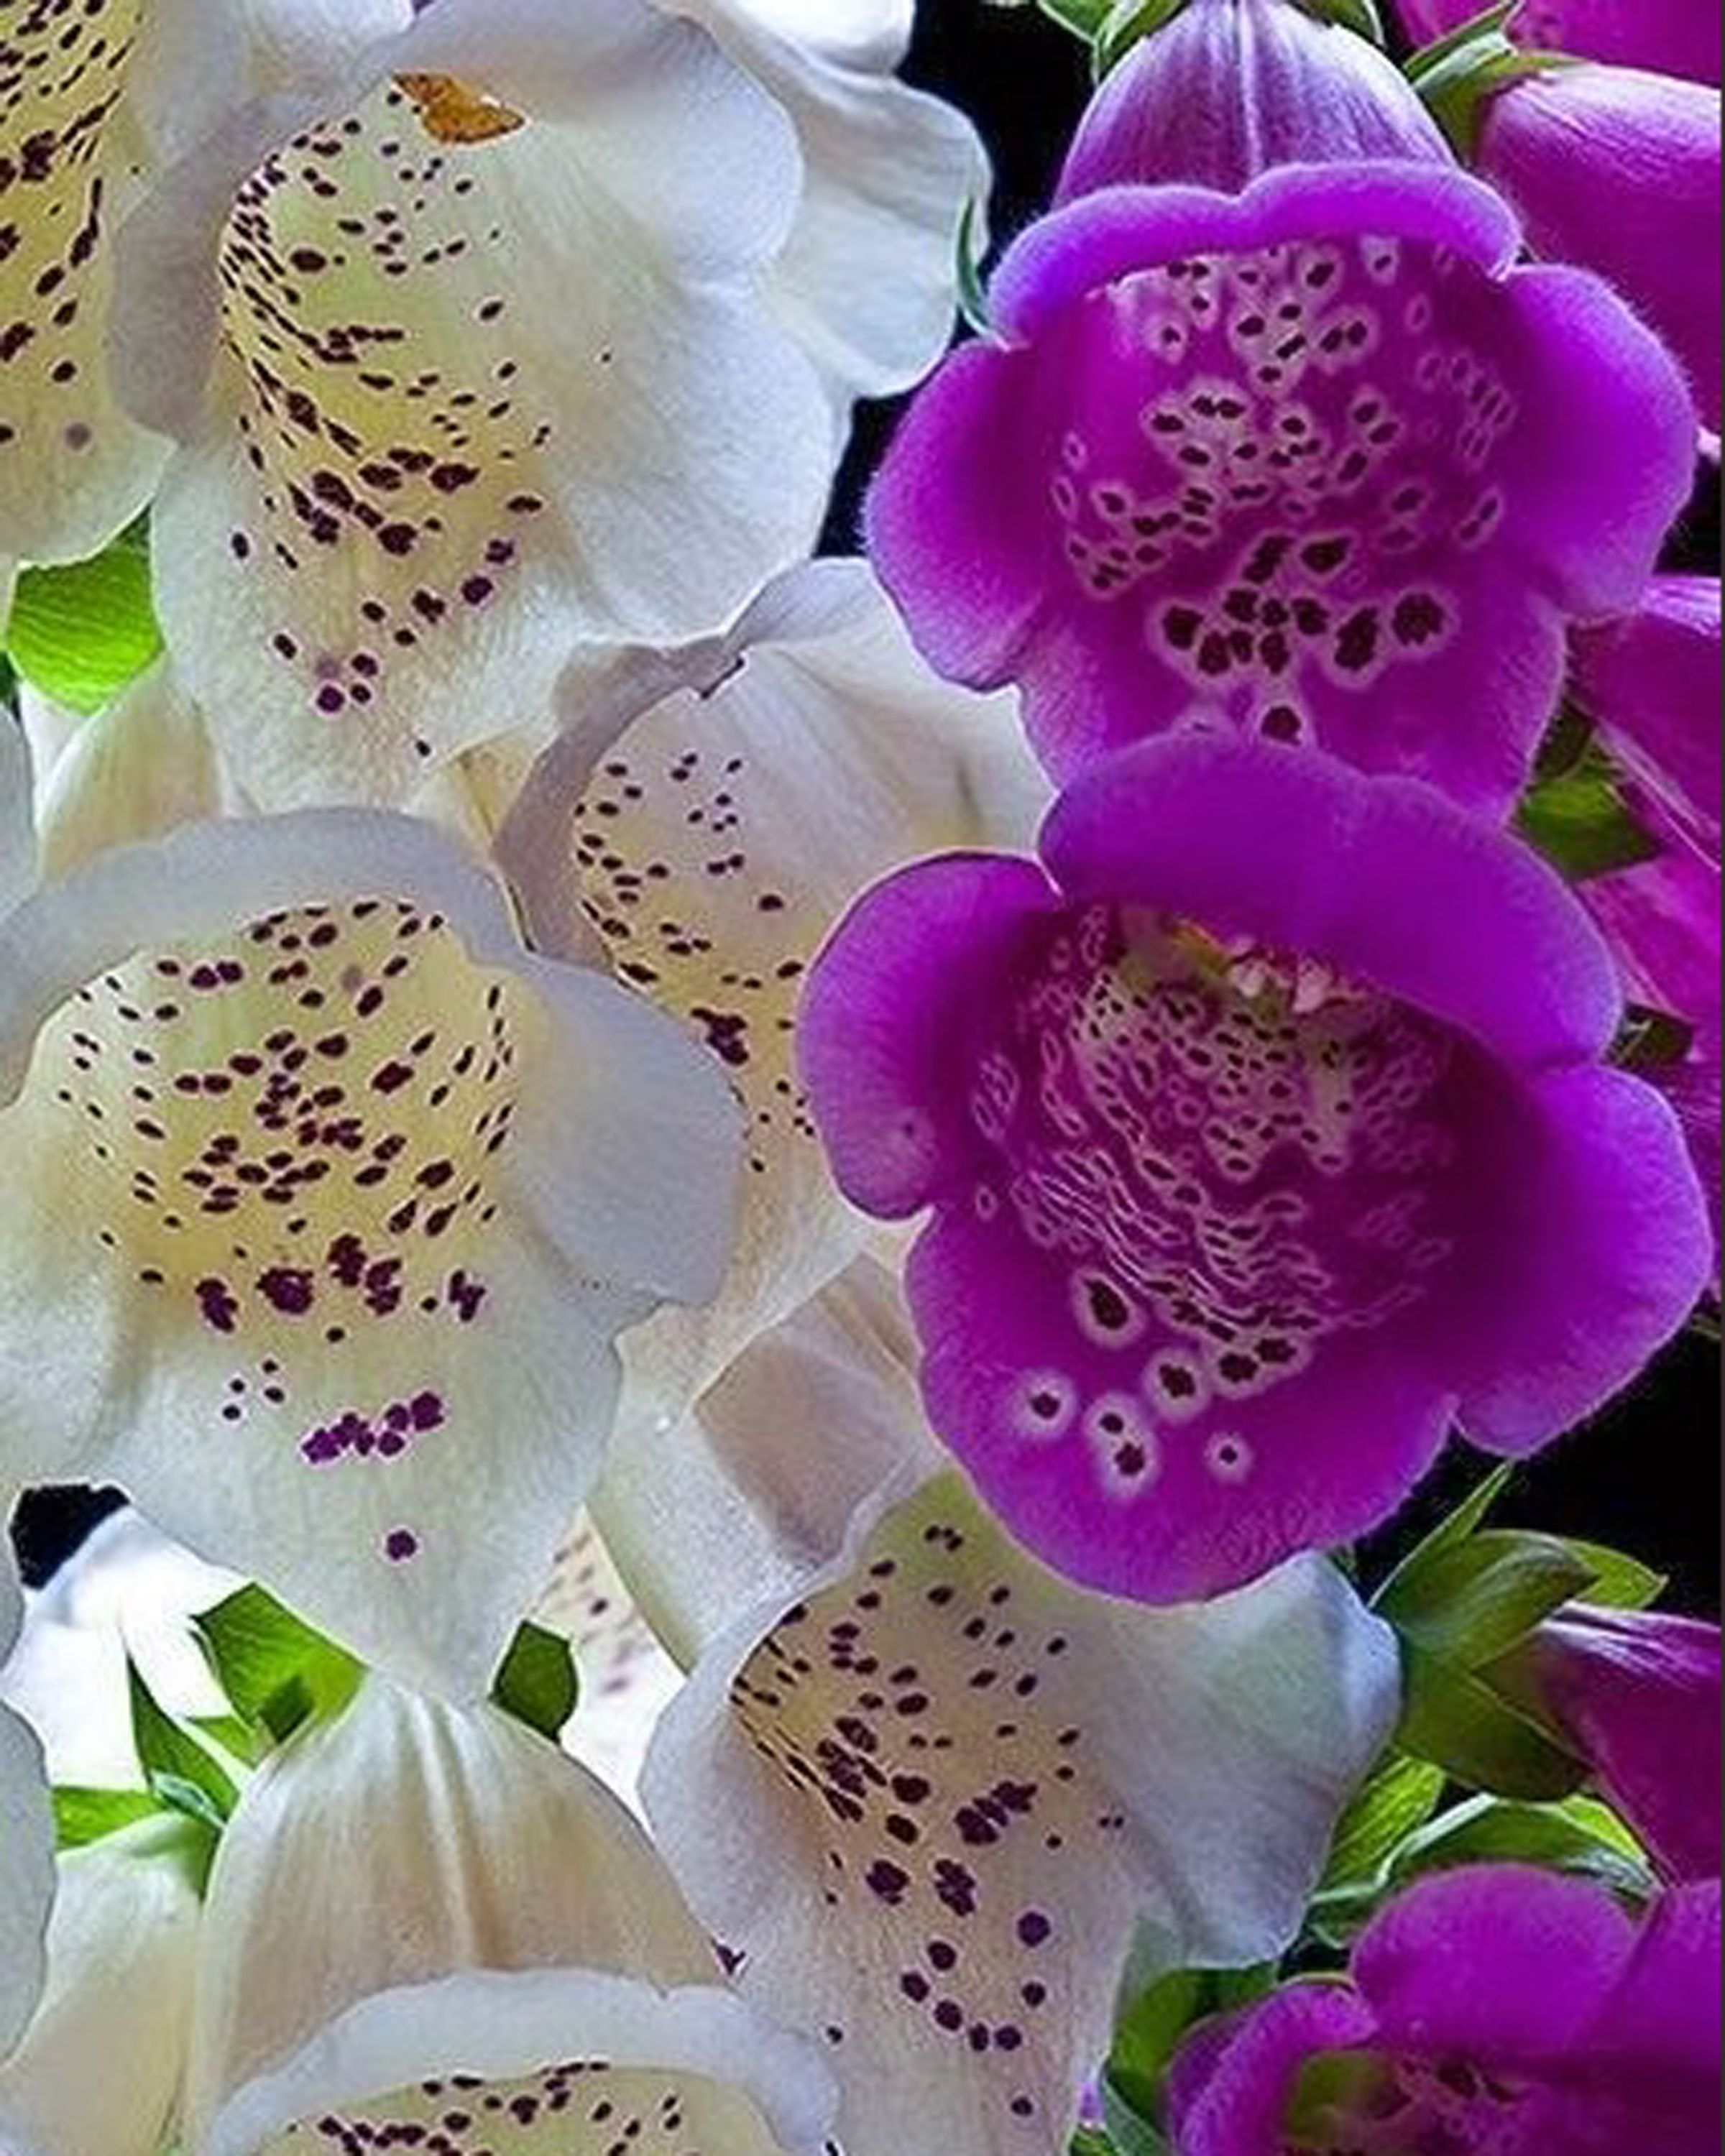 Pin by sandra d on flowers pinterest orchid and flowers